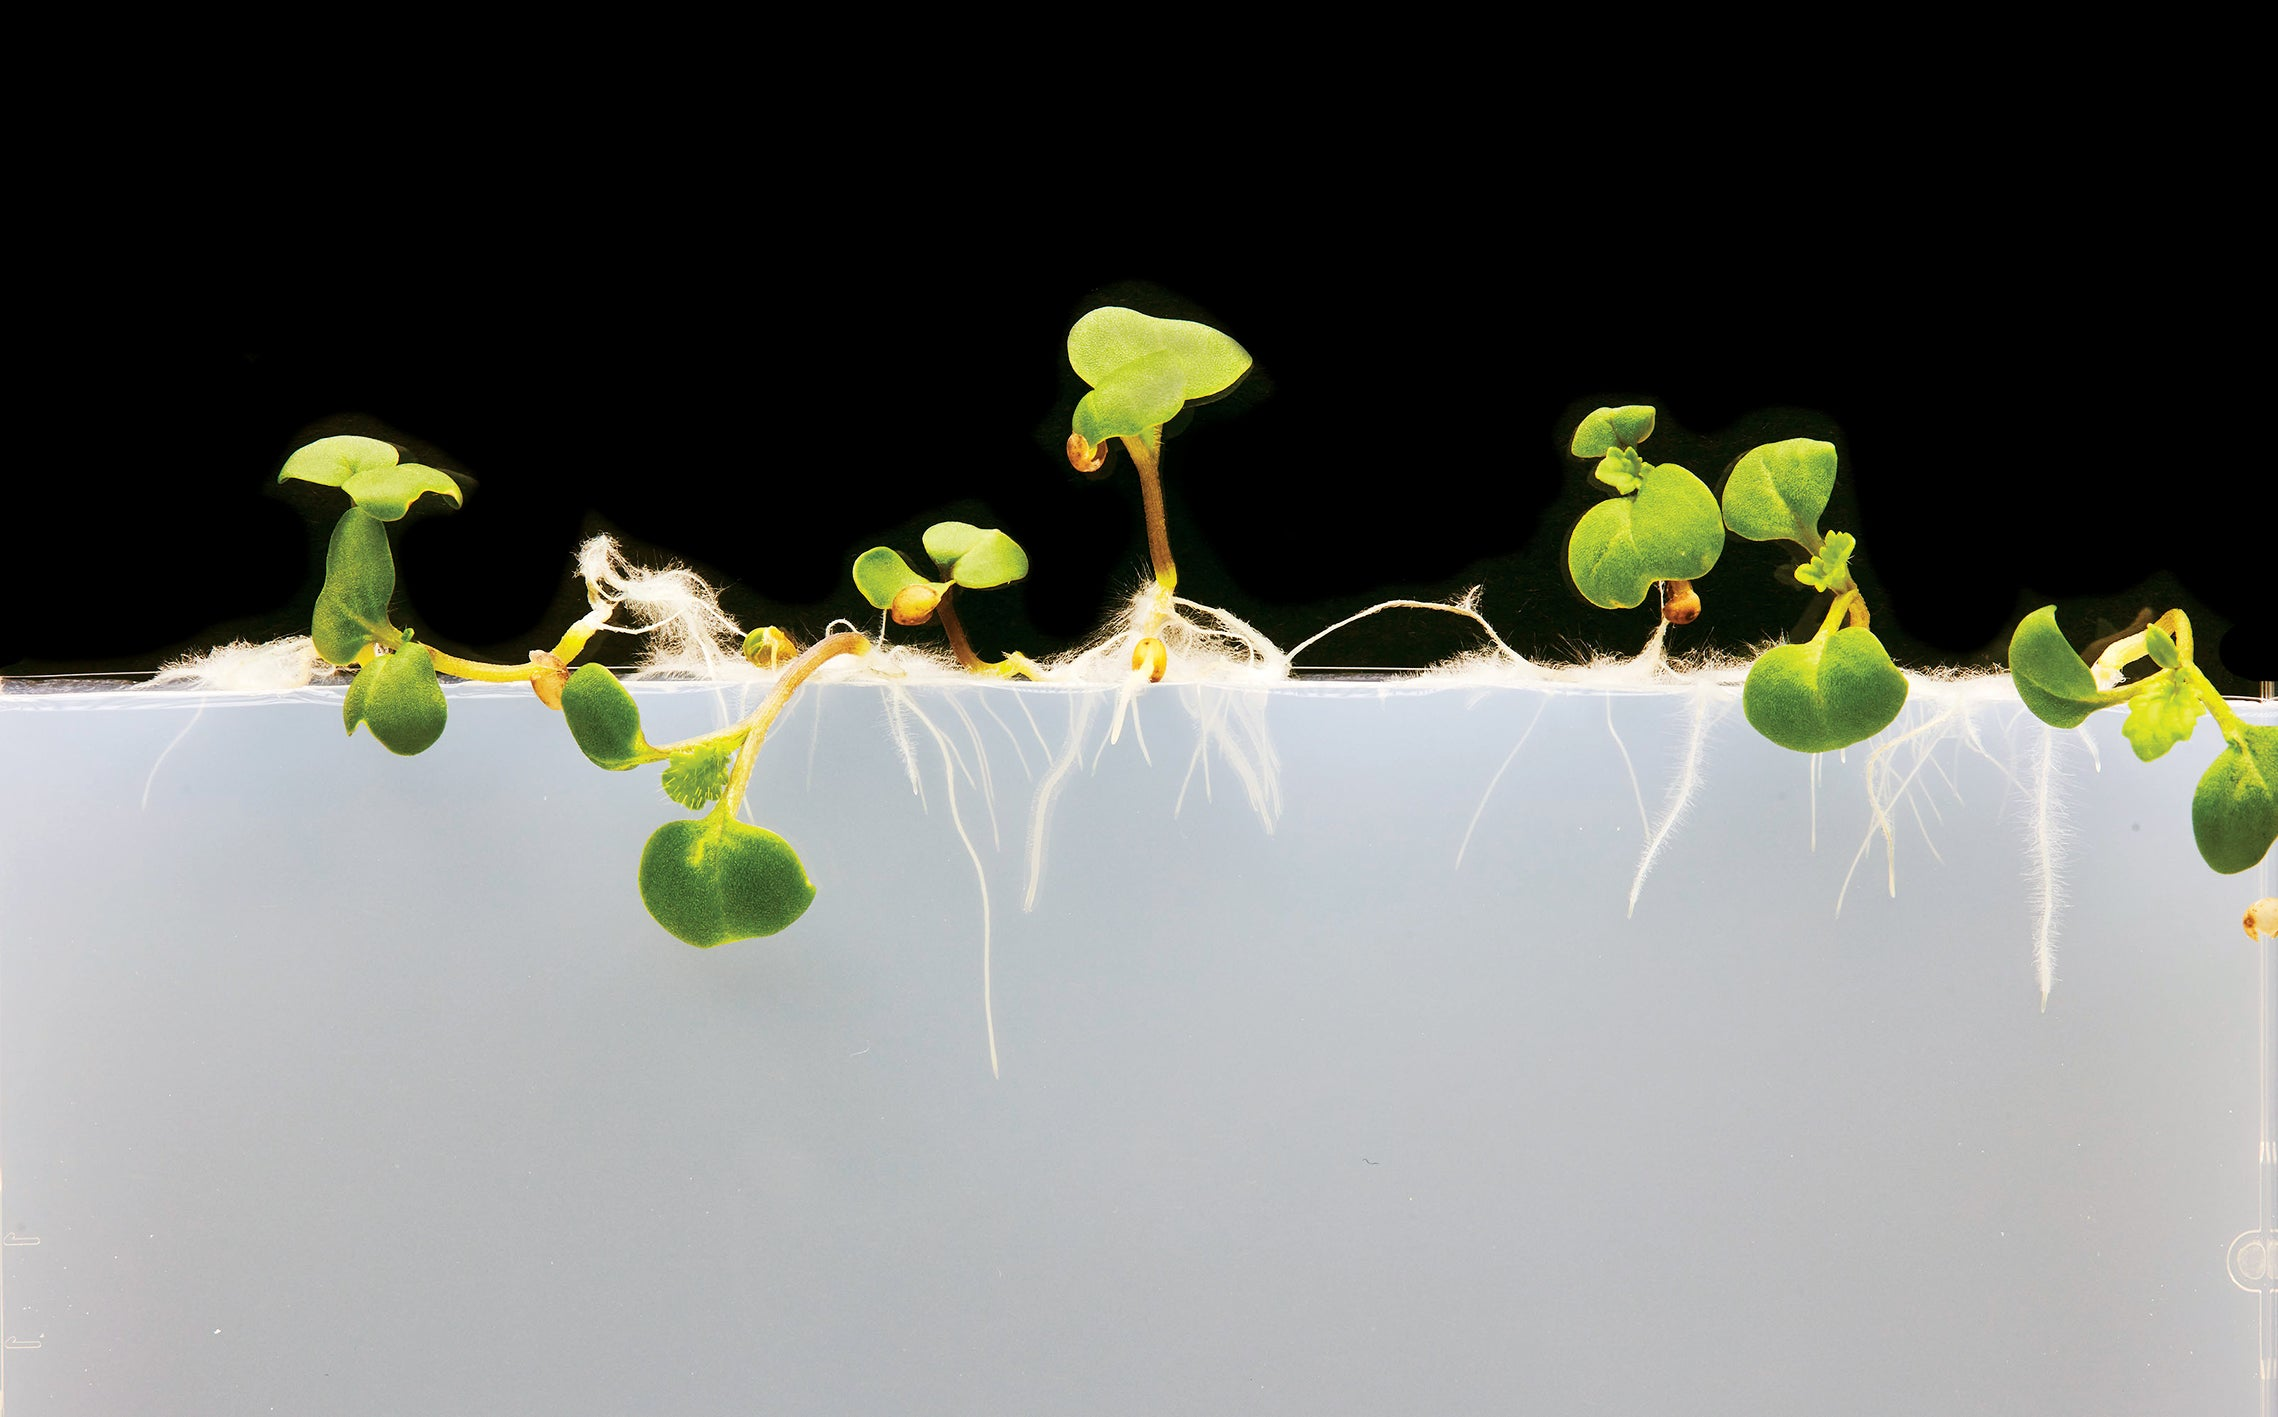 Watching seeds grow is nothing short of a miracle. So how do you ensure they have the best chance of survival?